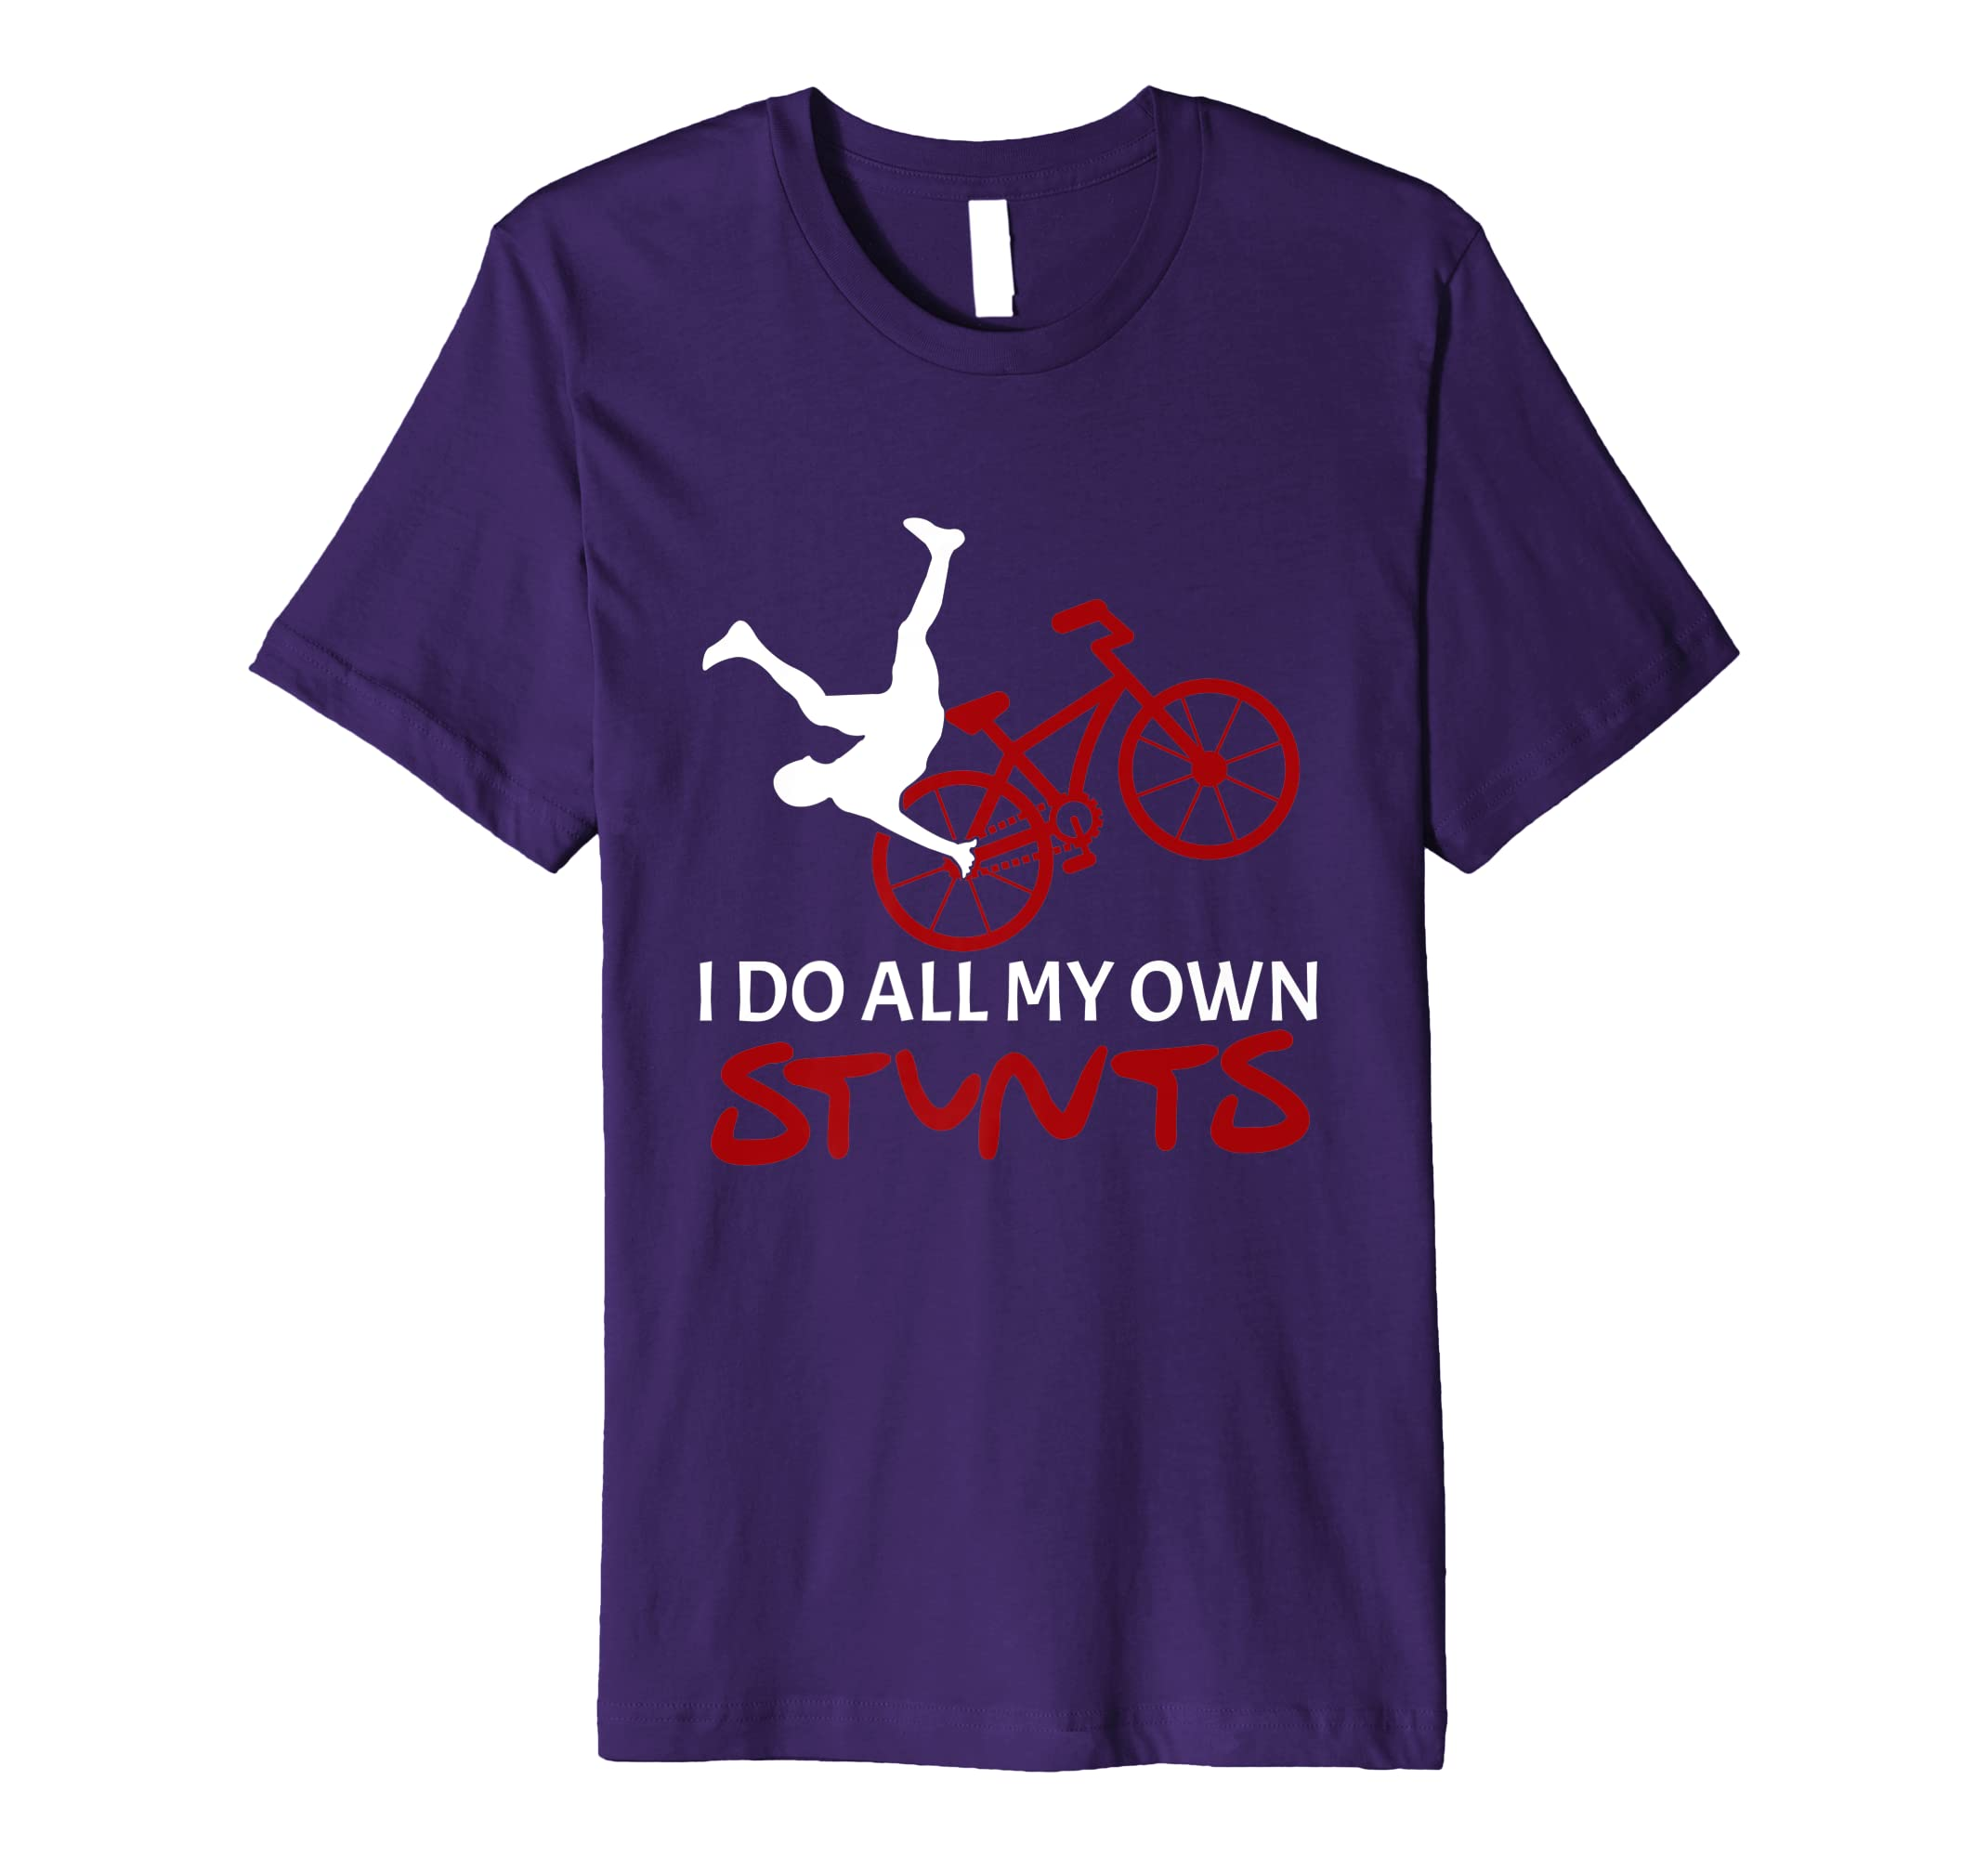 'I Do All My Own Stunts' Hilarous Bike Gift Shirt-ANZ